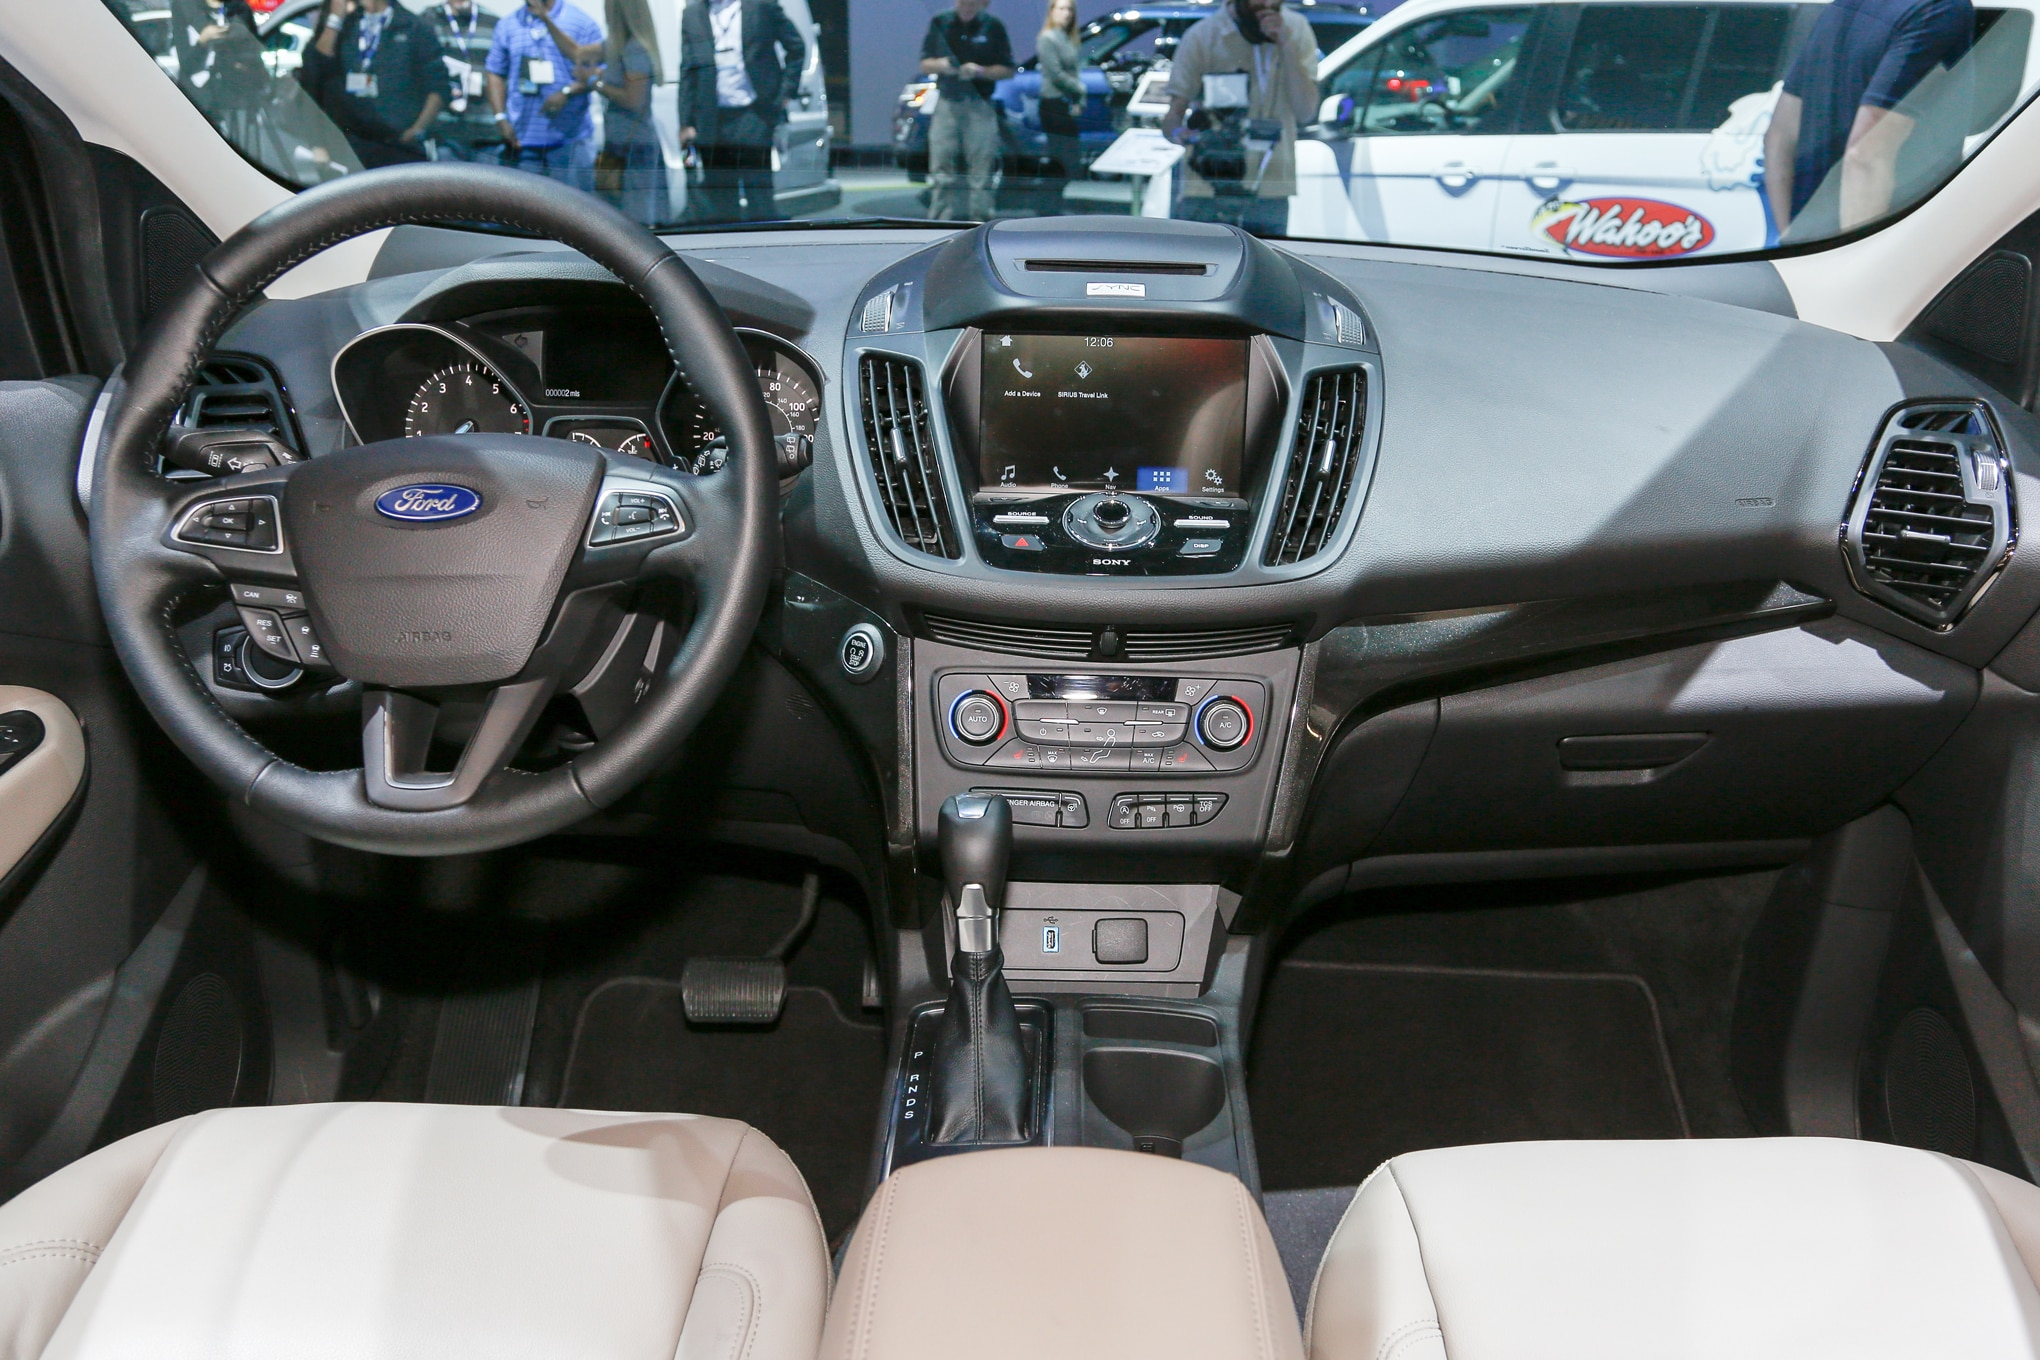 A Heated Steering Wheel Adaptive Cruise Control Lane Departure Warning And A Sync Connect Smartphone App That Can Unlock The Doors Start The Engine